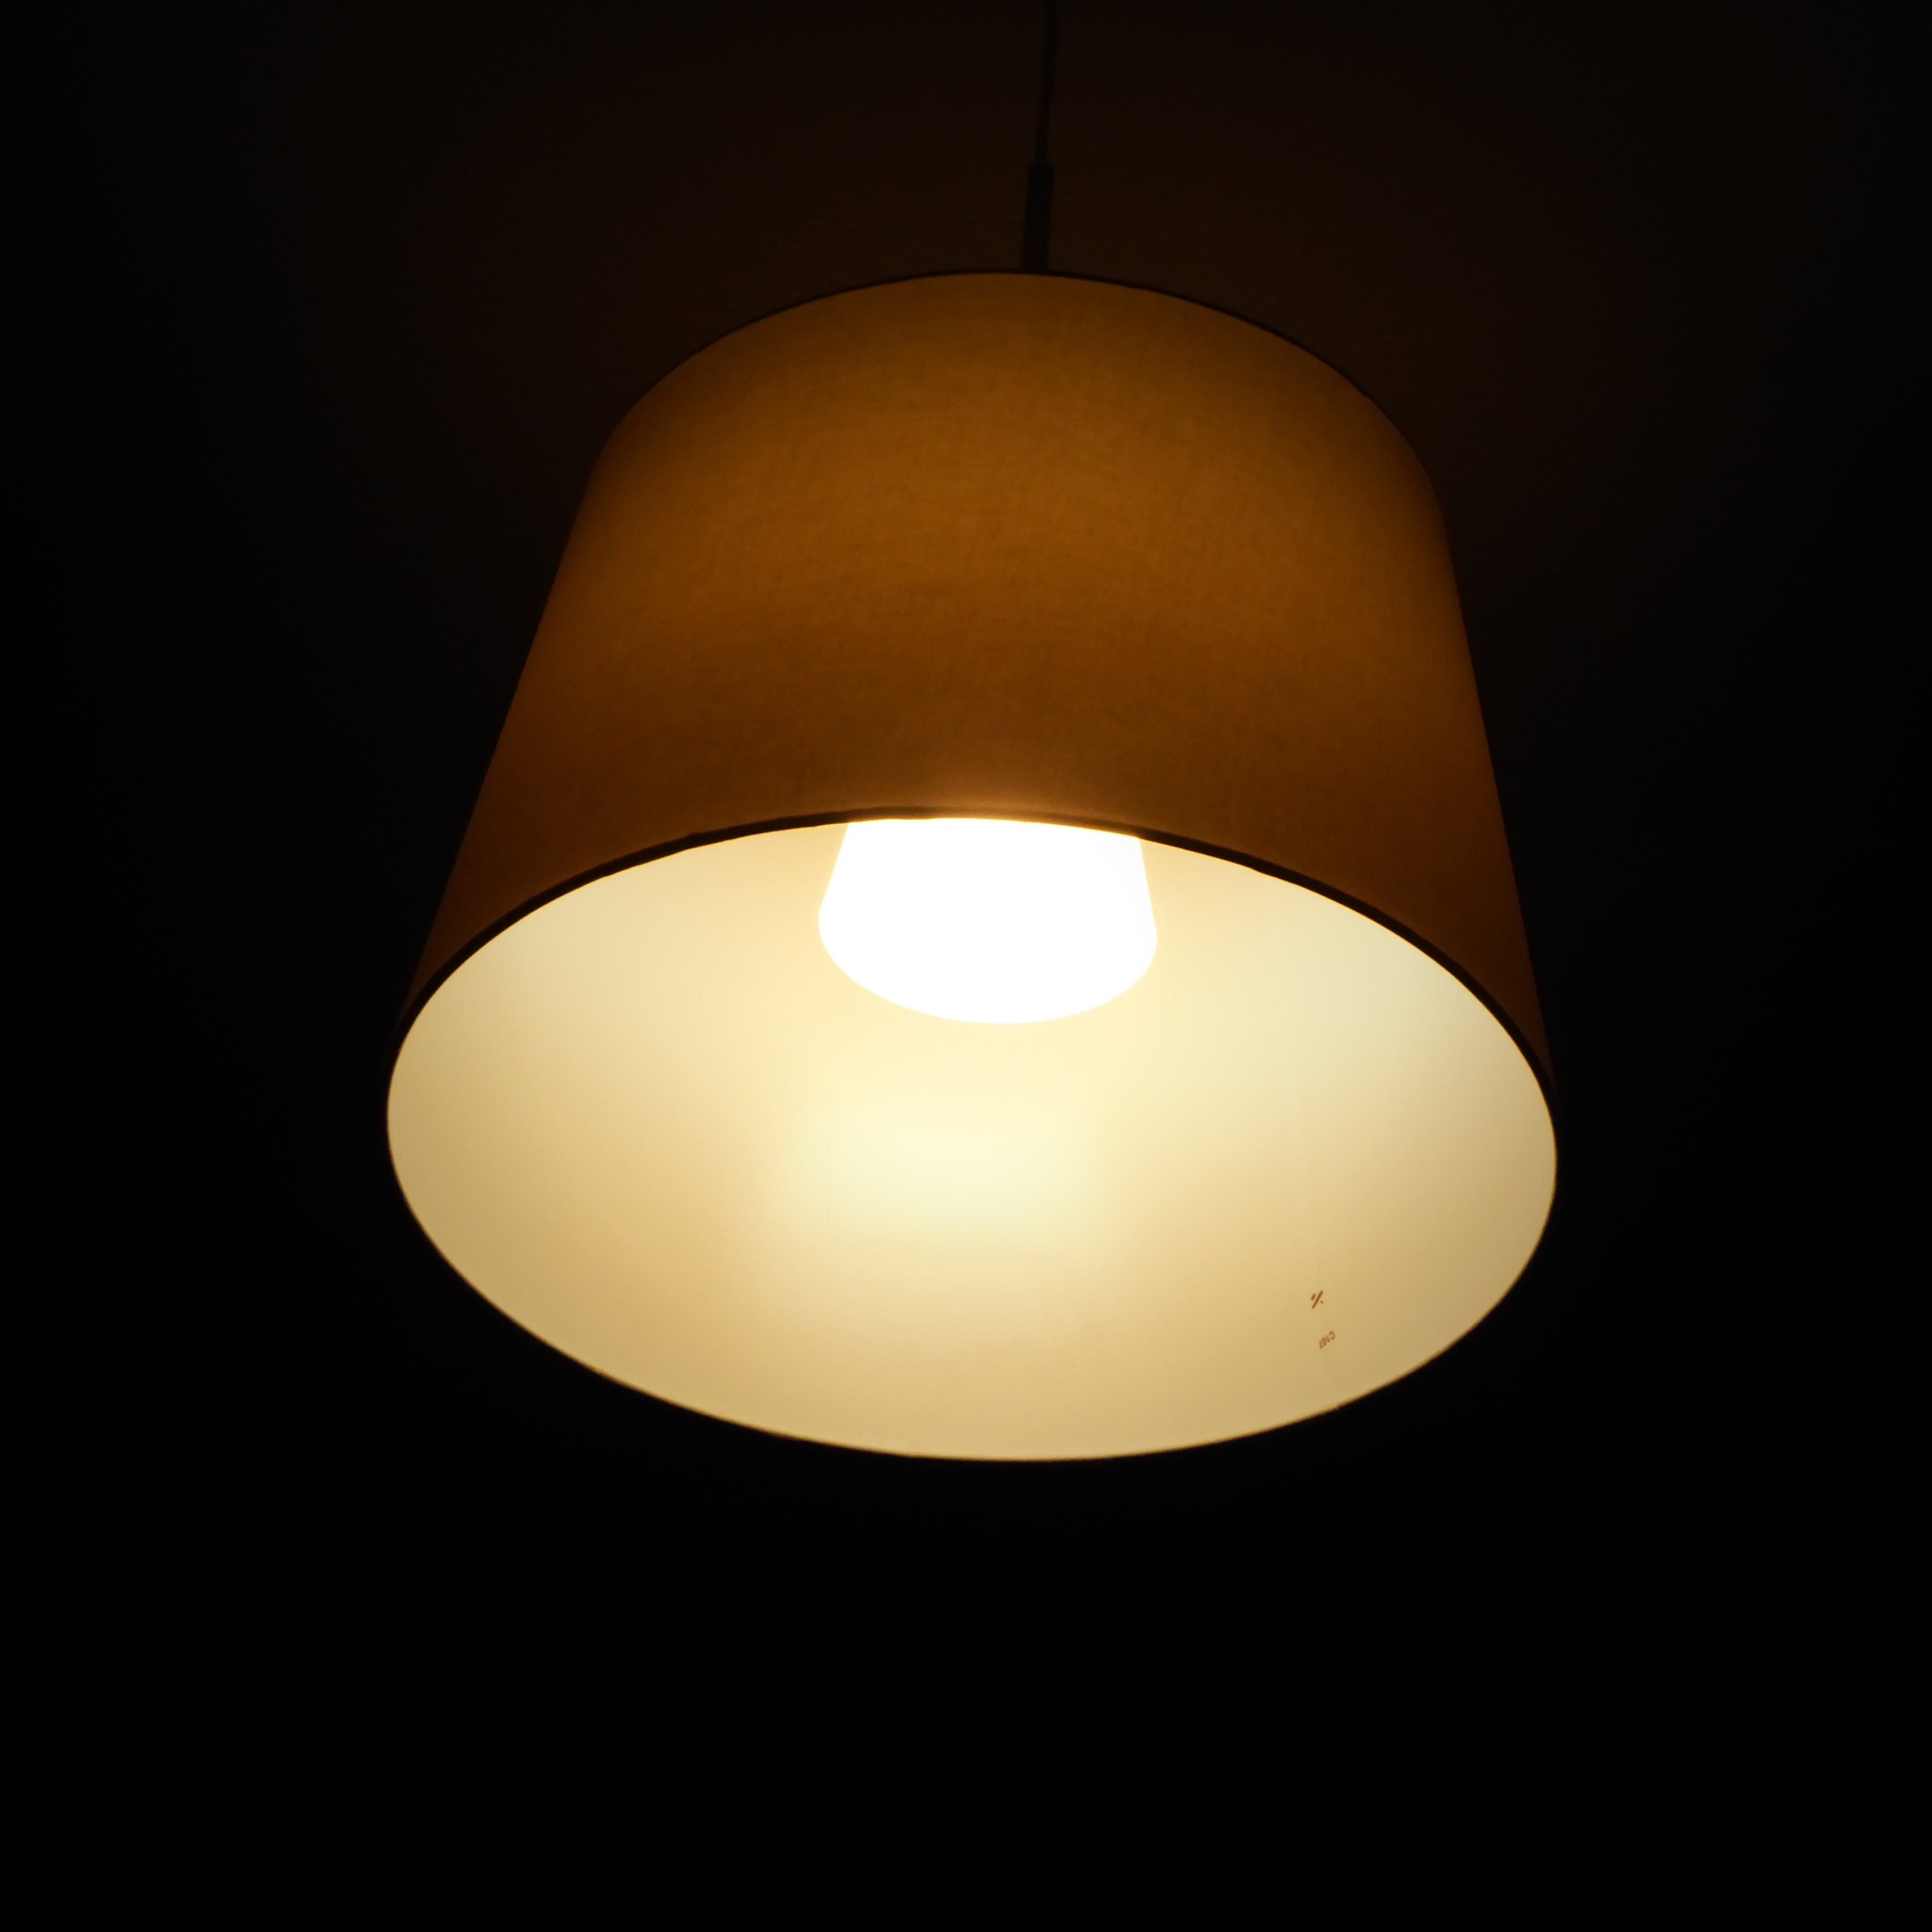 Free stock photo of ceiling lamp, lamp, lampshade, light